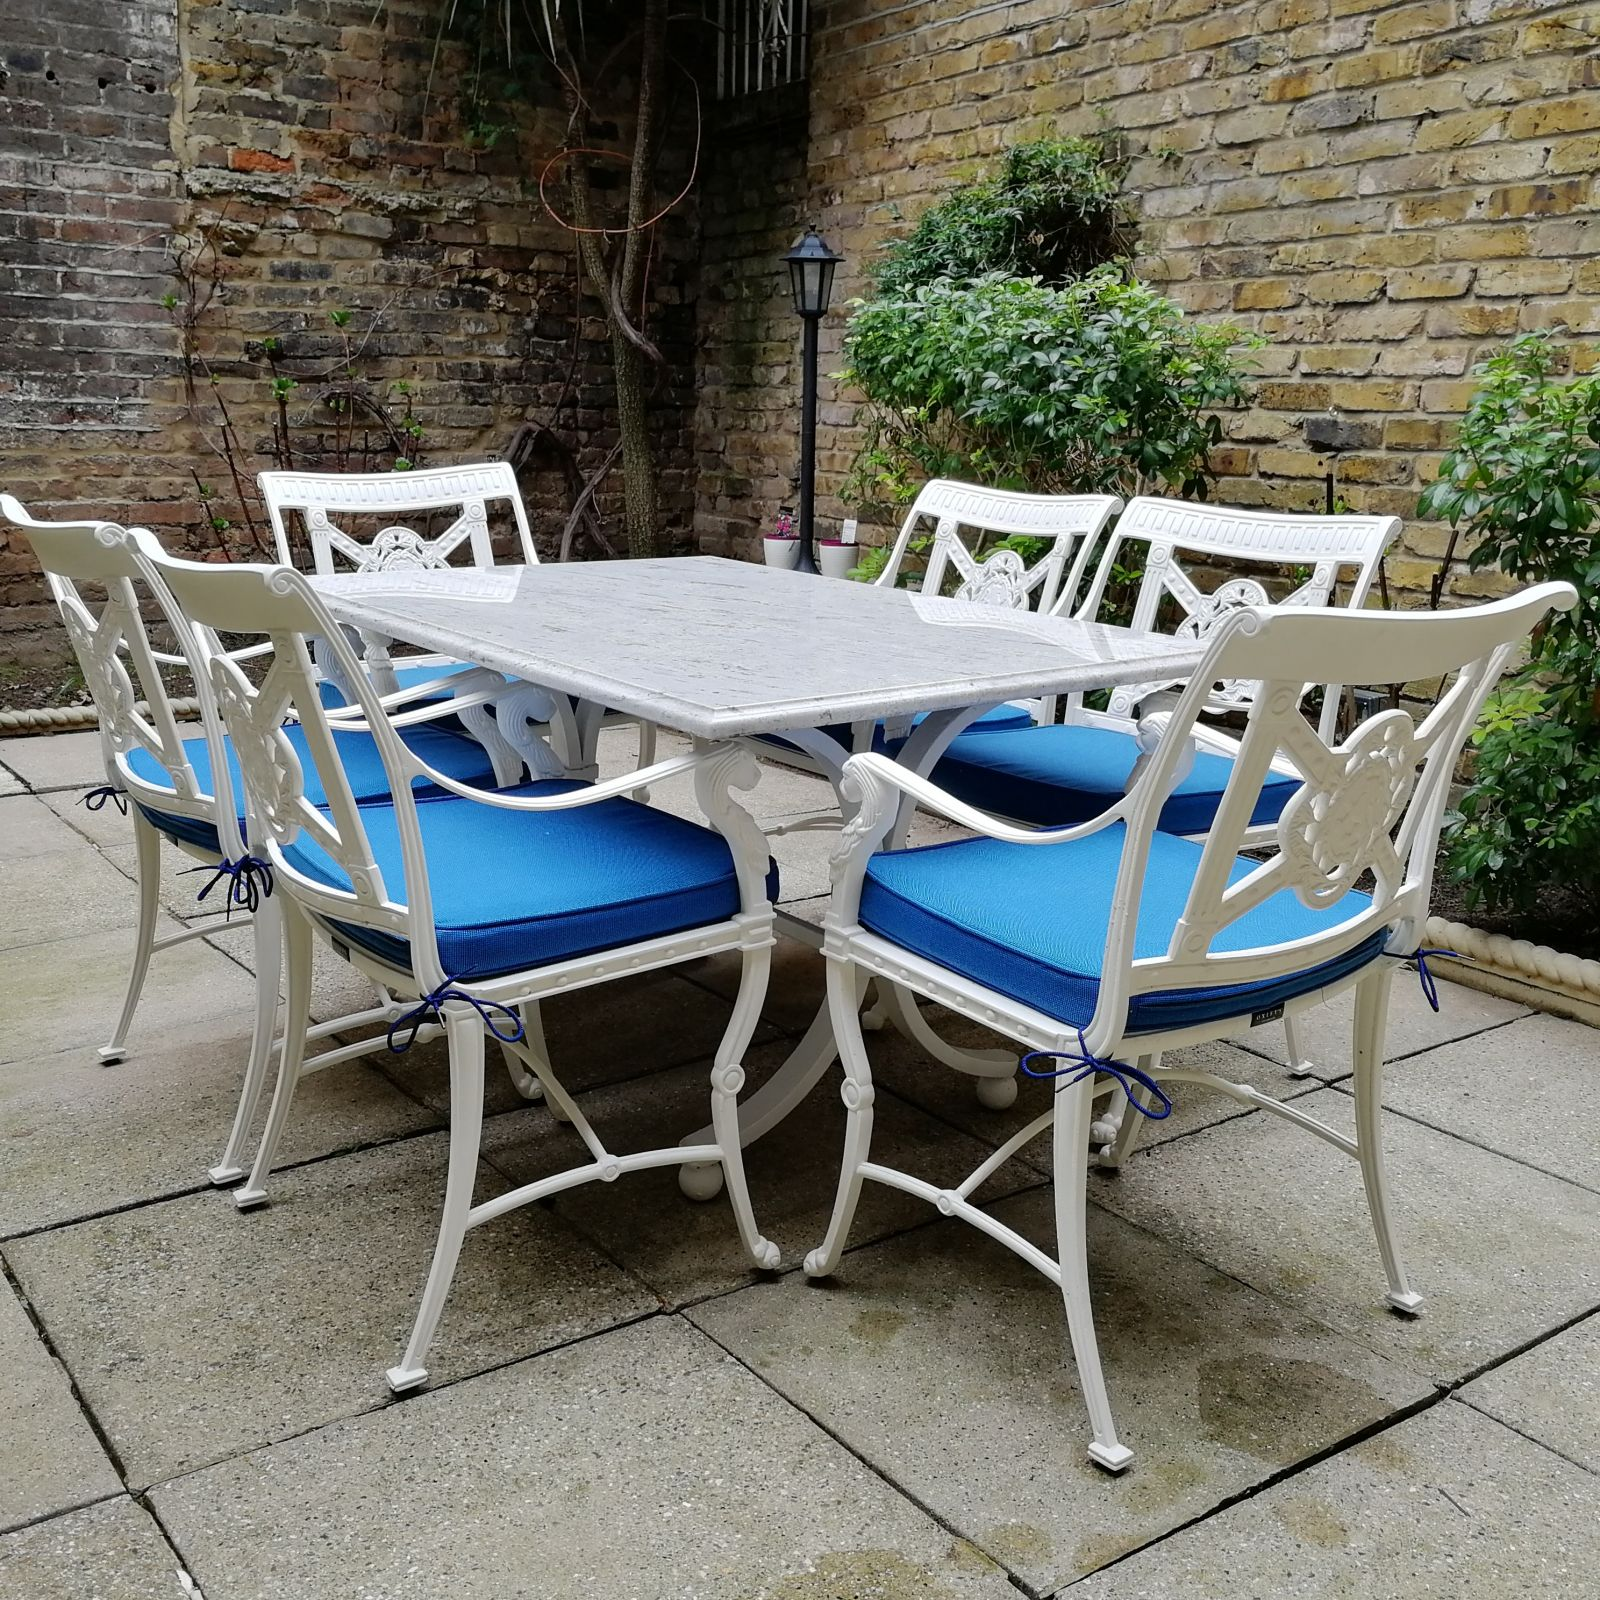 Marble garden dining table with 6 chairs